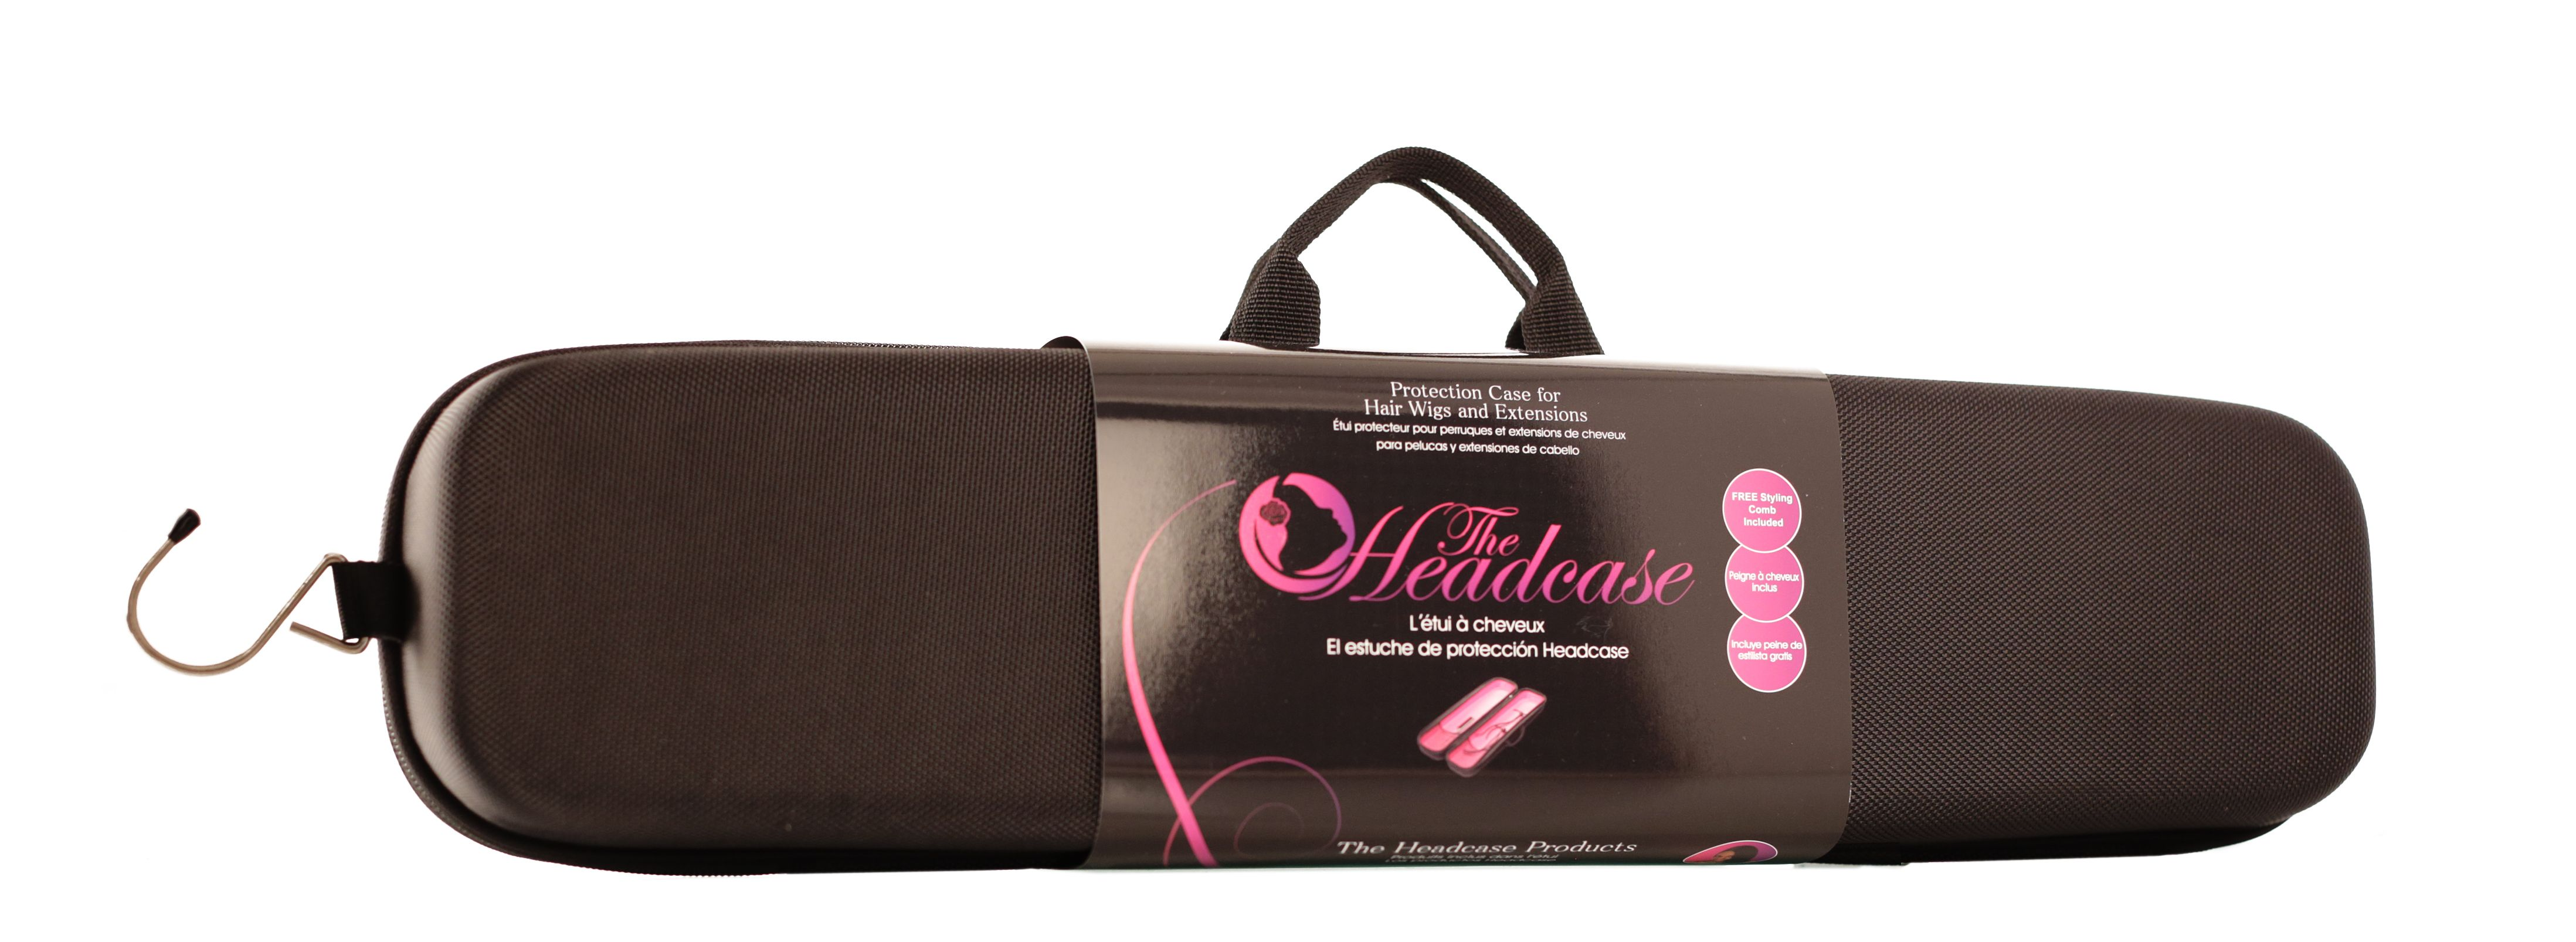 The Headcase Bullet Hair Extension Storage Case Is Perfect For